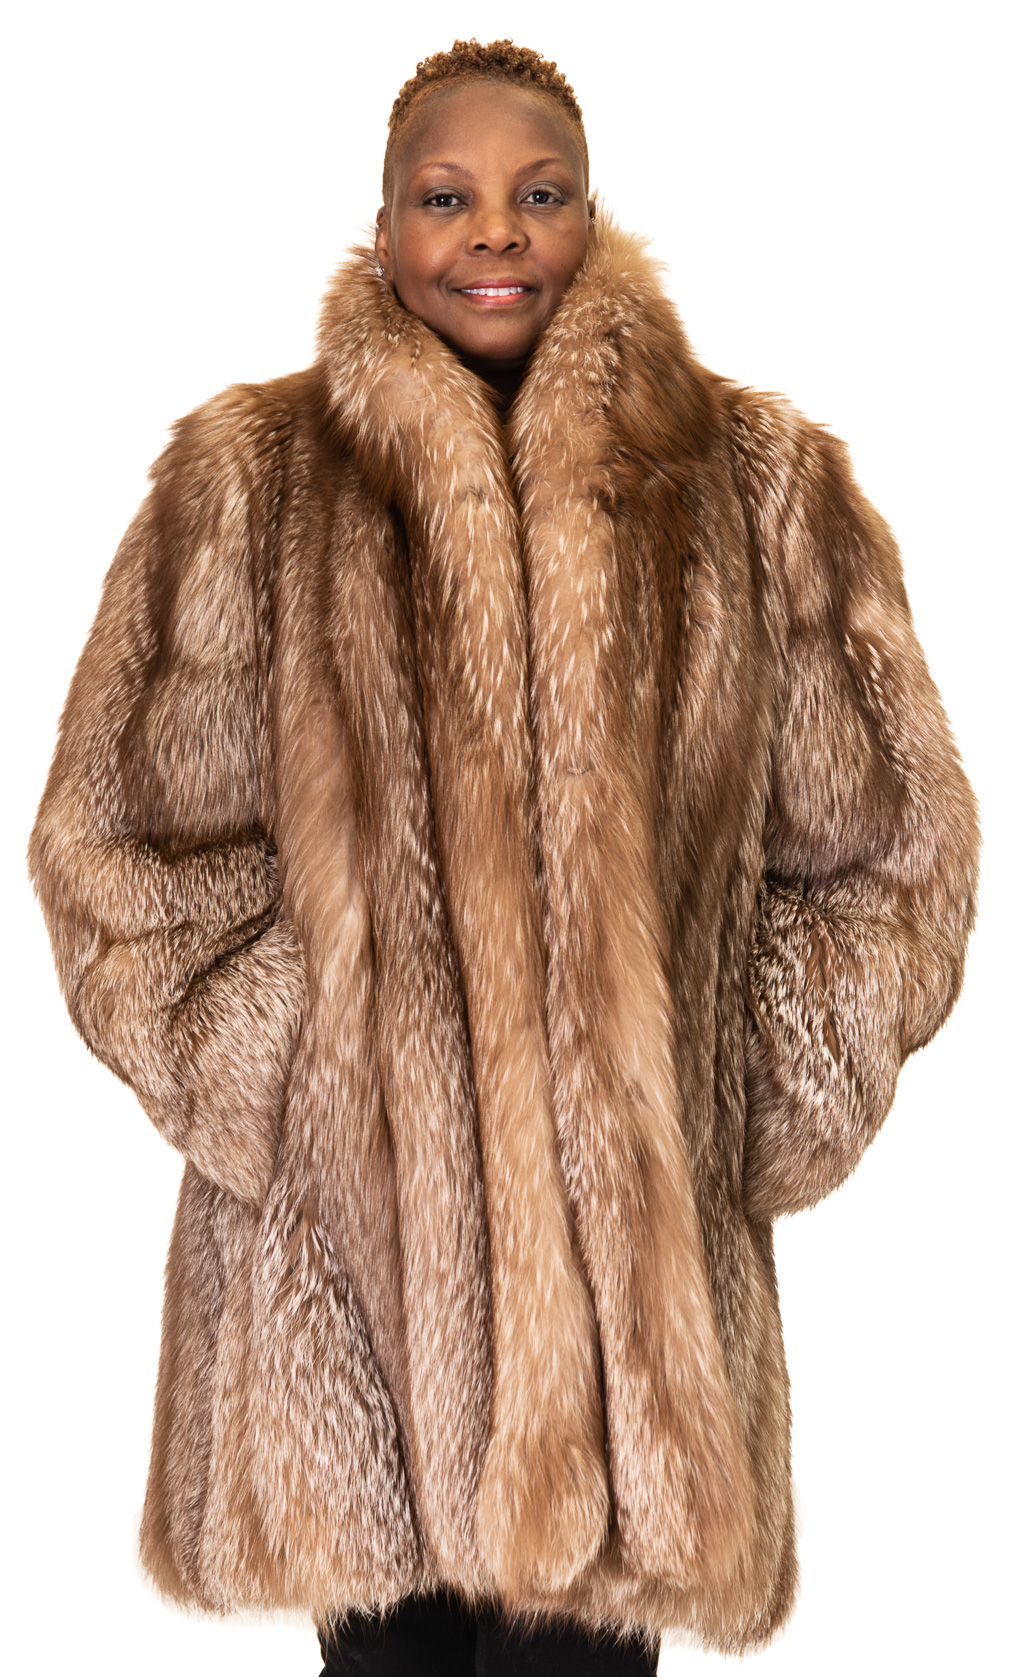 118 2 Silver Fox Ugent Furs